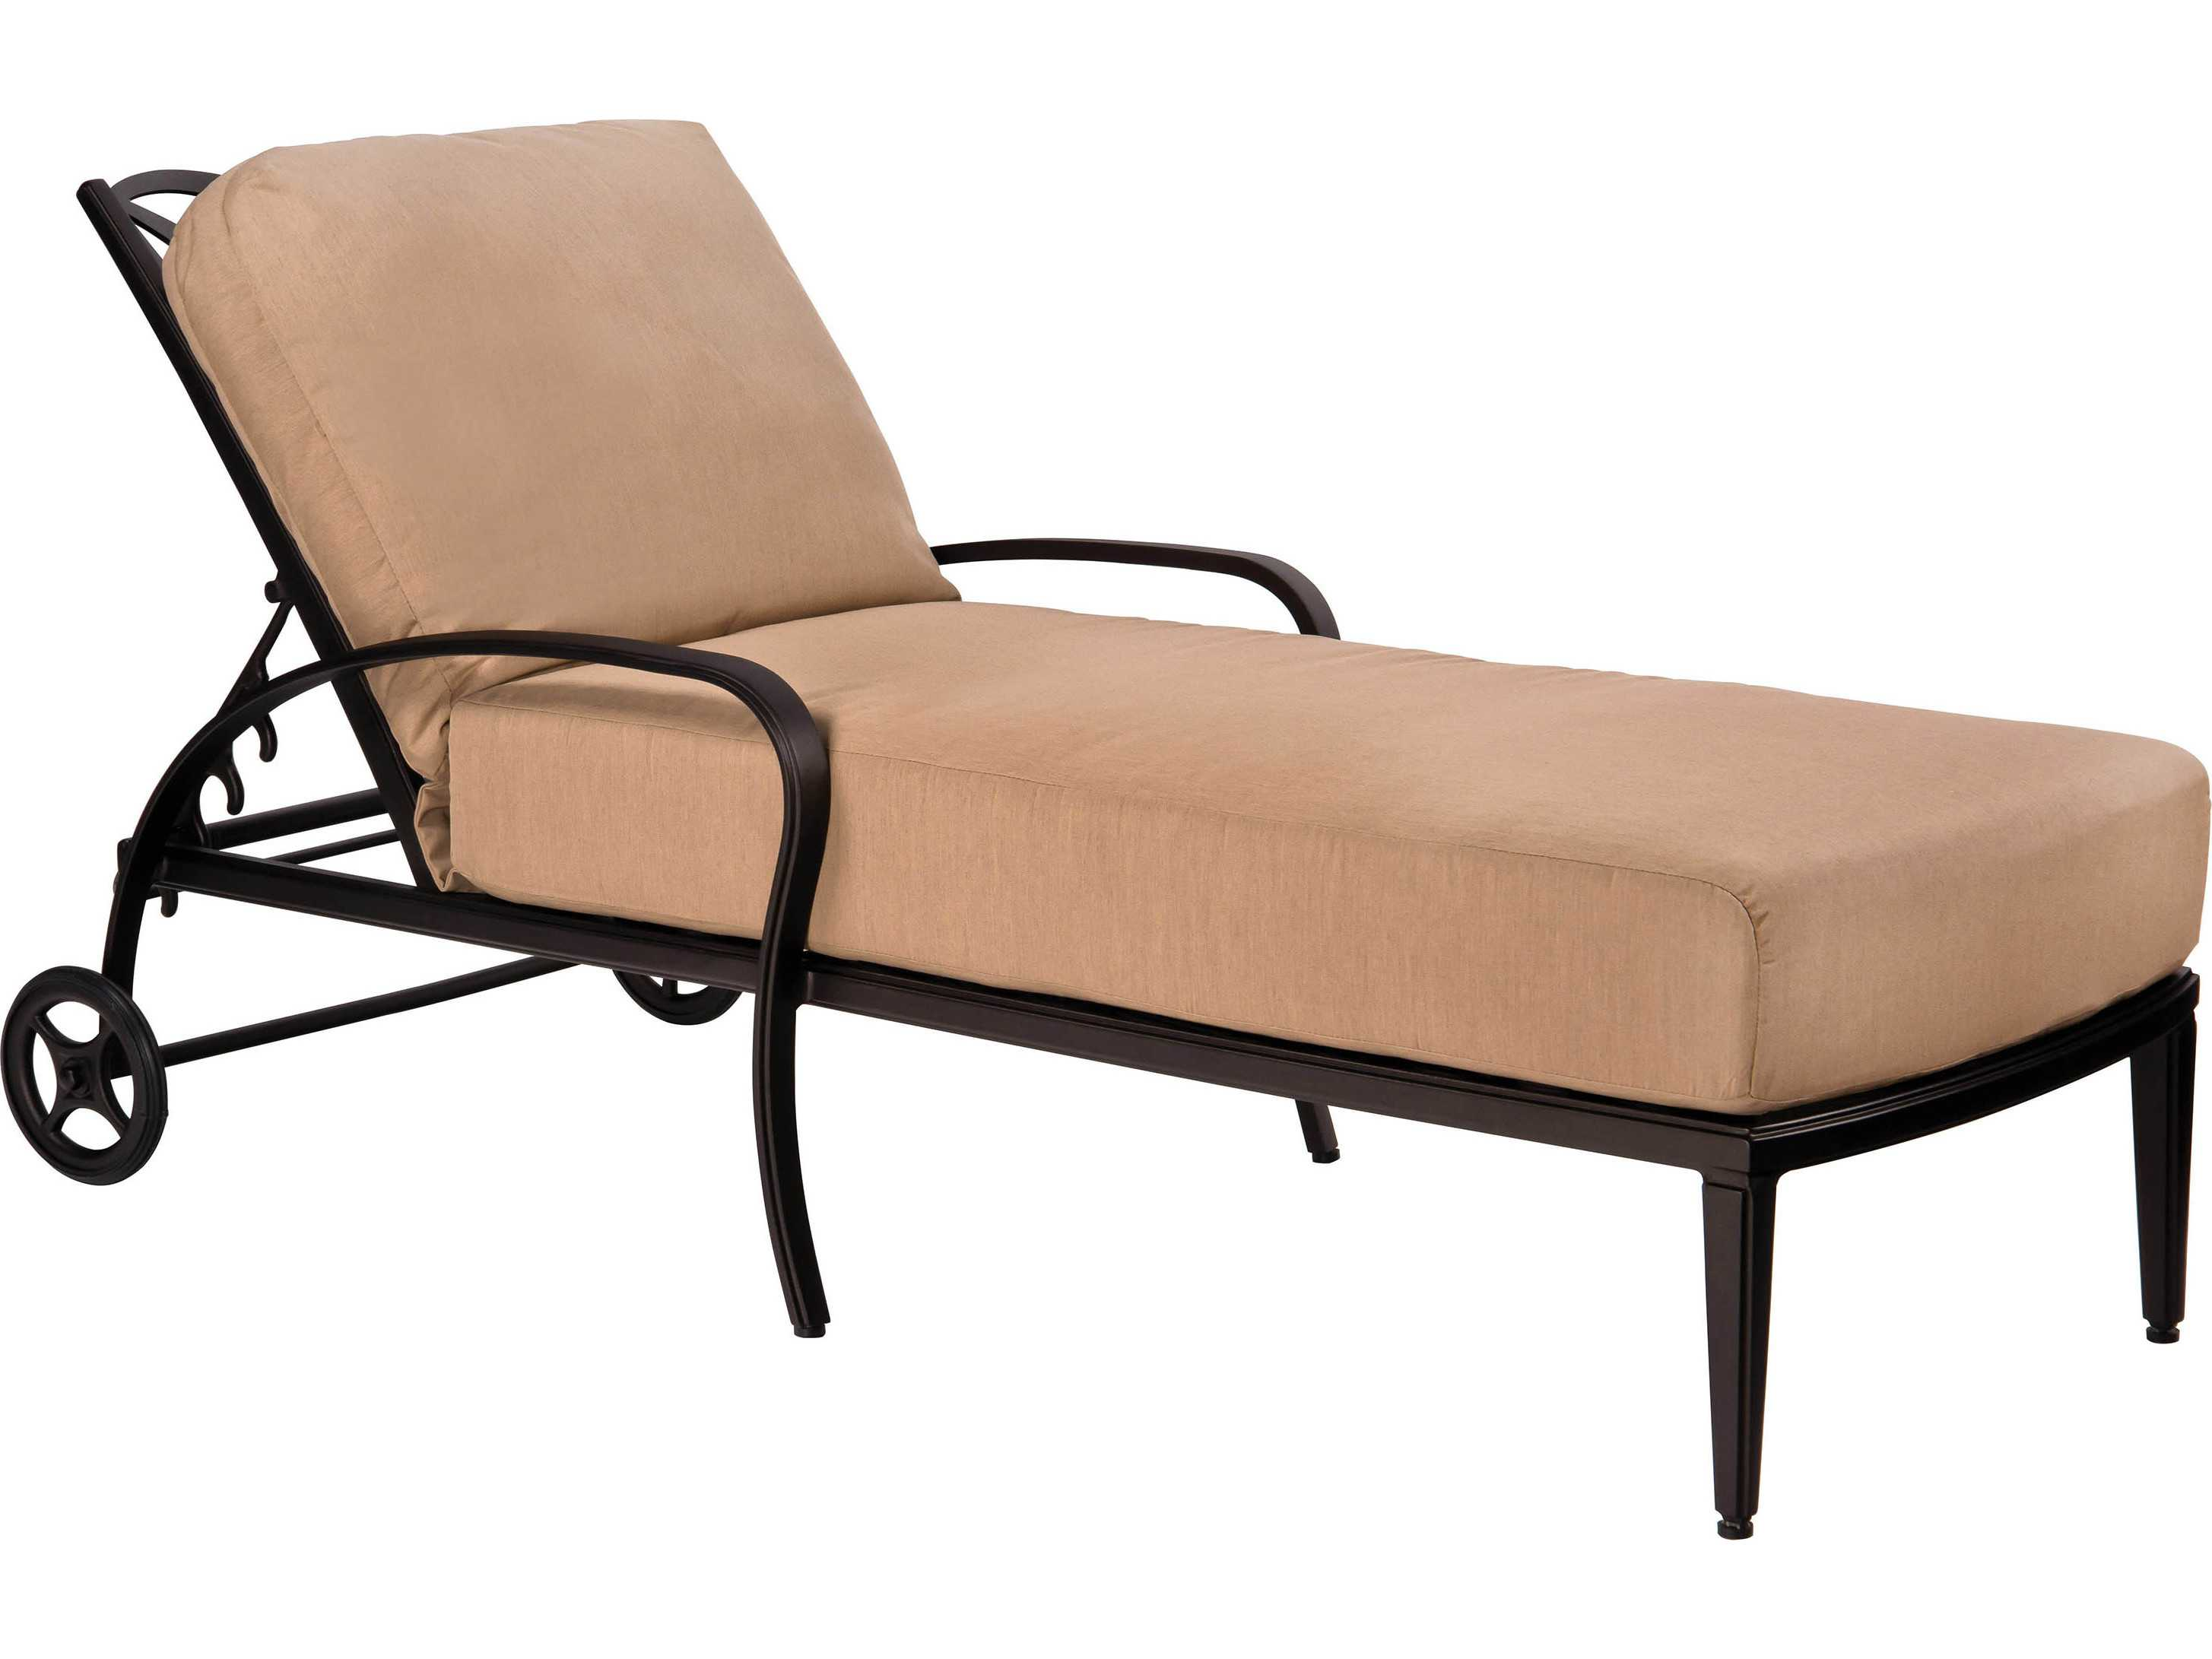 Woodard Apollo Aluminum Chaise Lounge